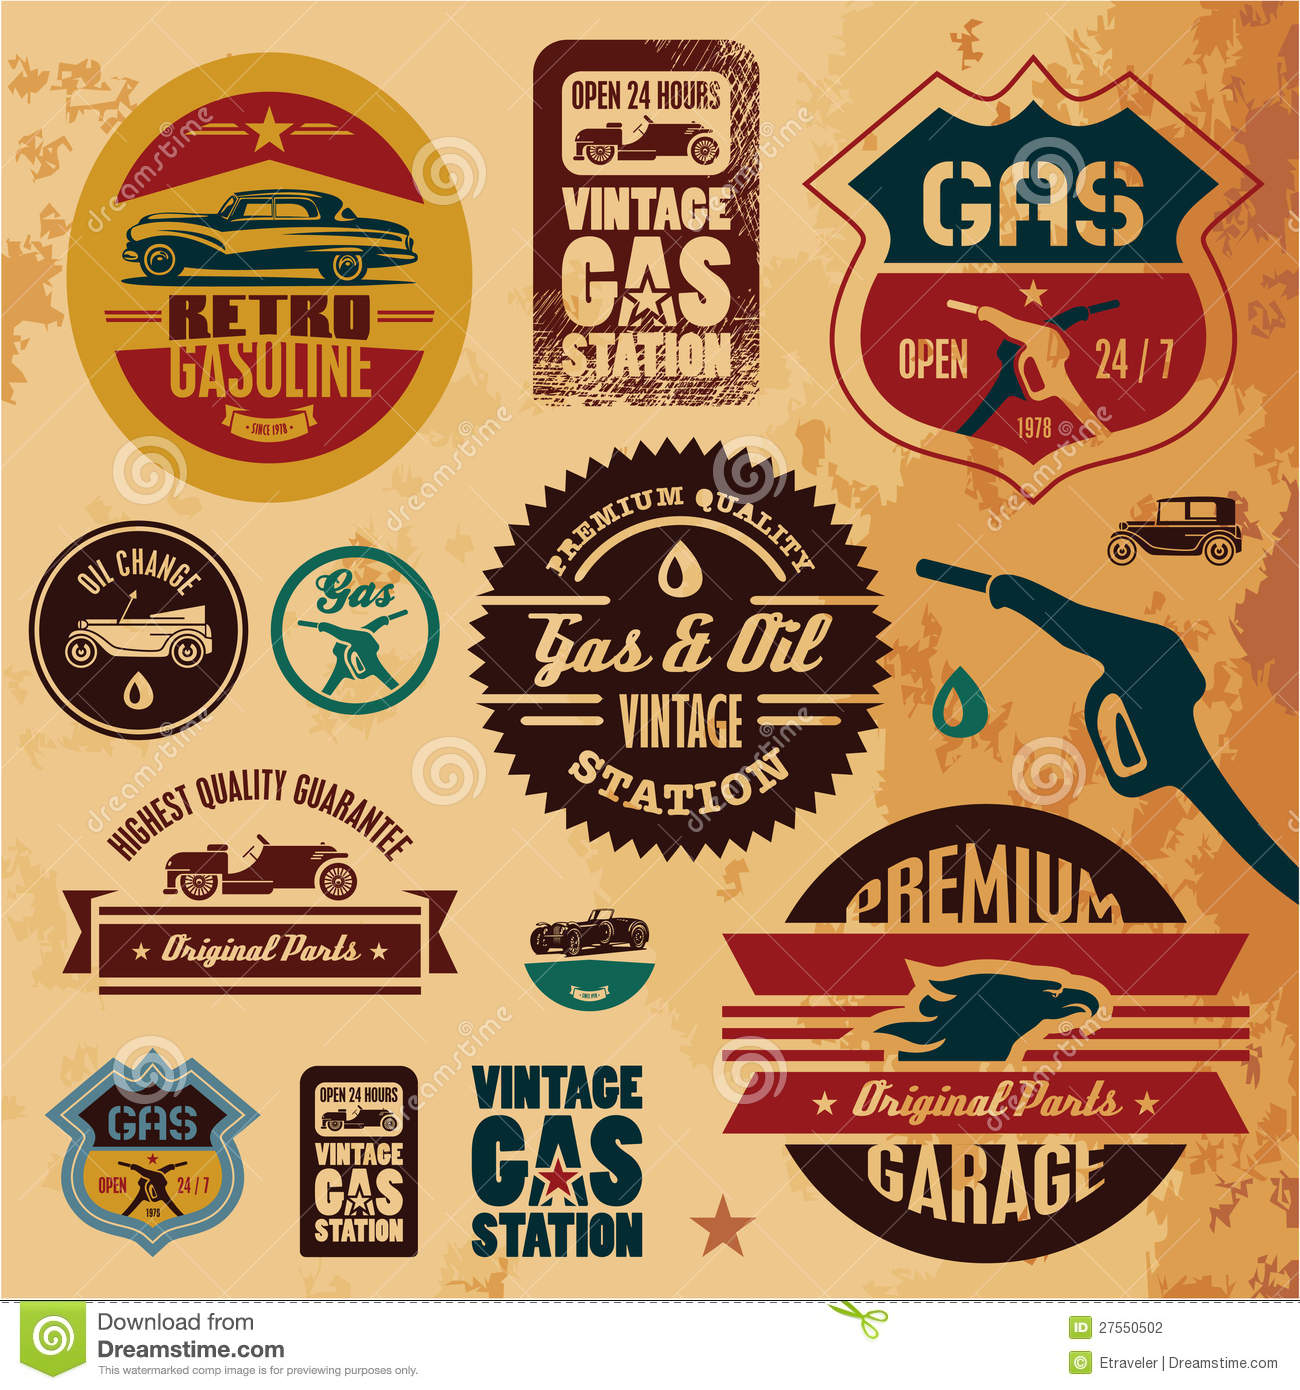 Vintage gasoline labels